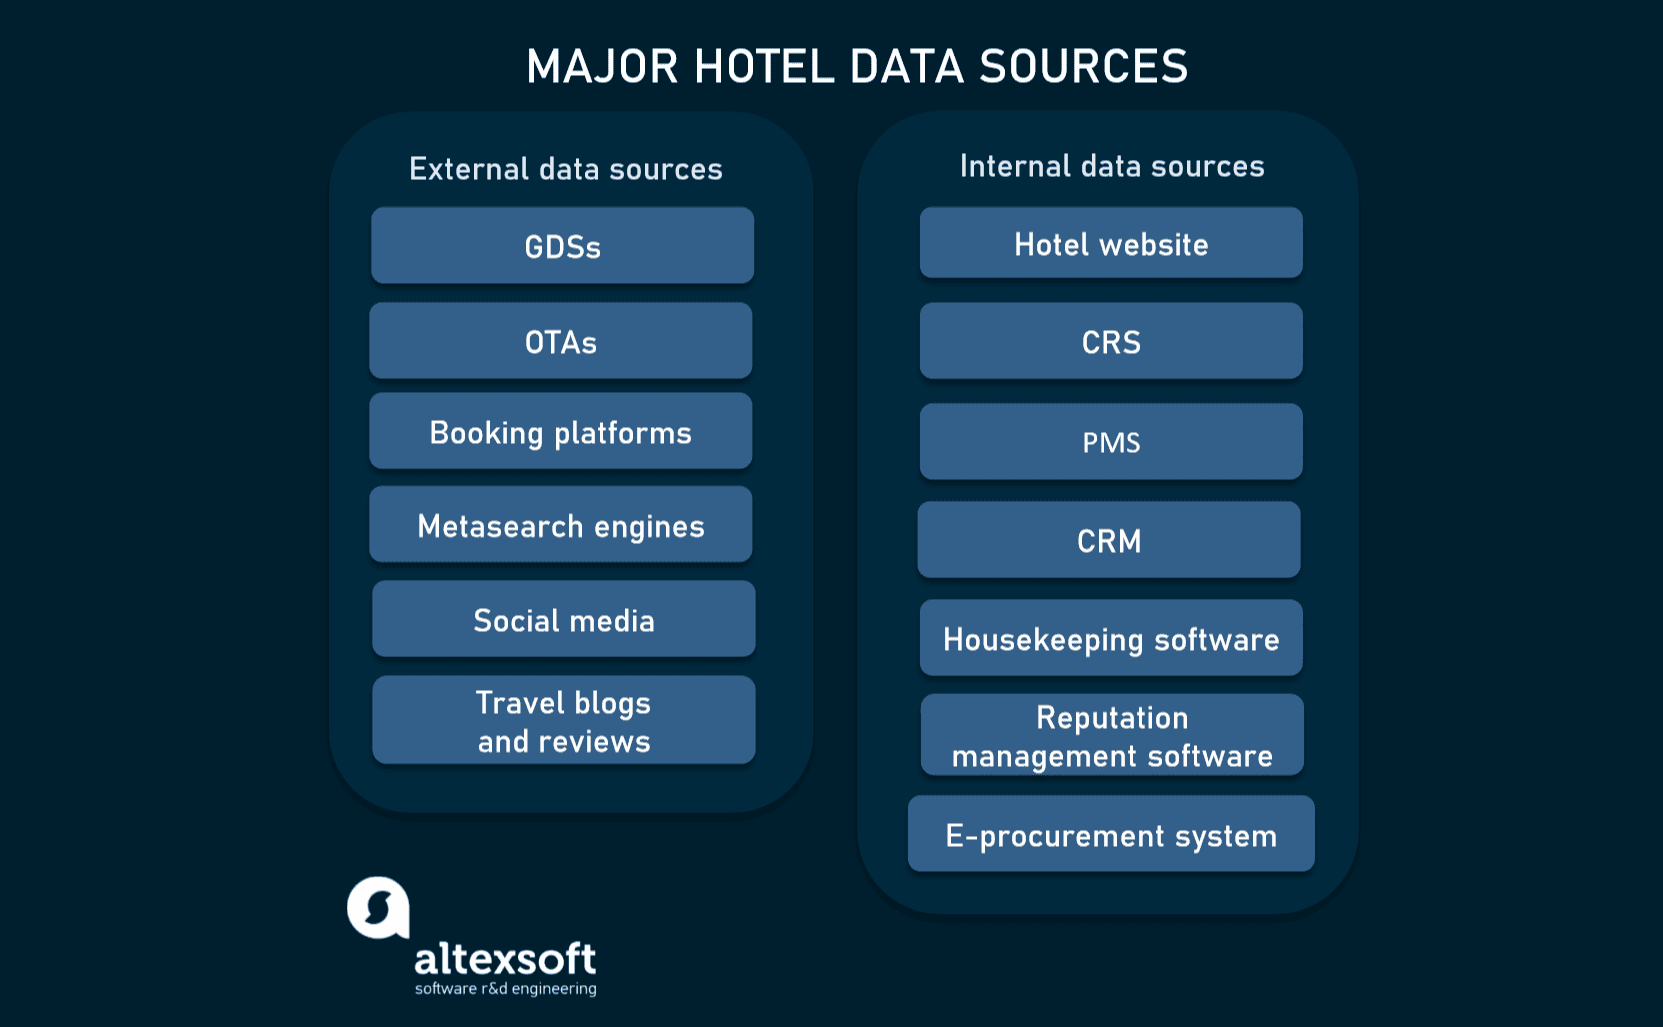 Major hotel data sources overview